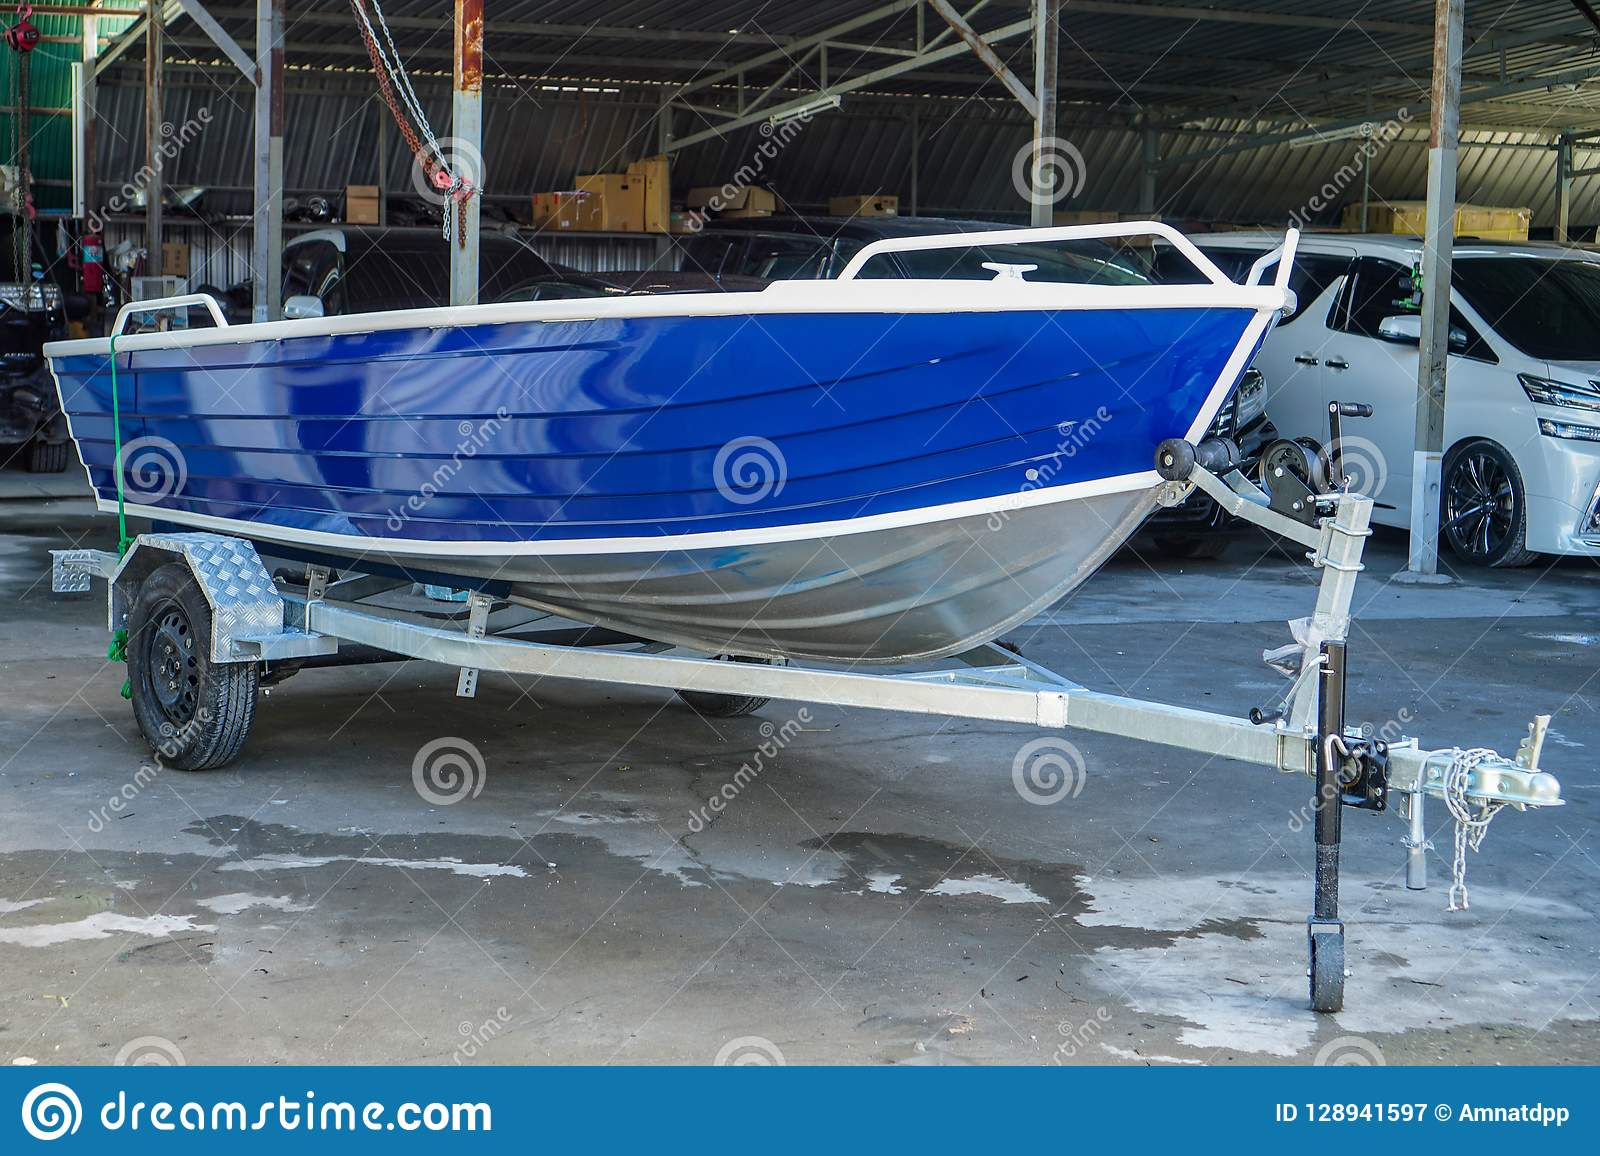 Paint The Boat In Blue And White Stock Image - Image of ...